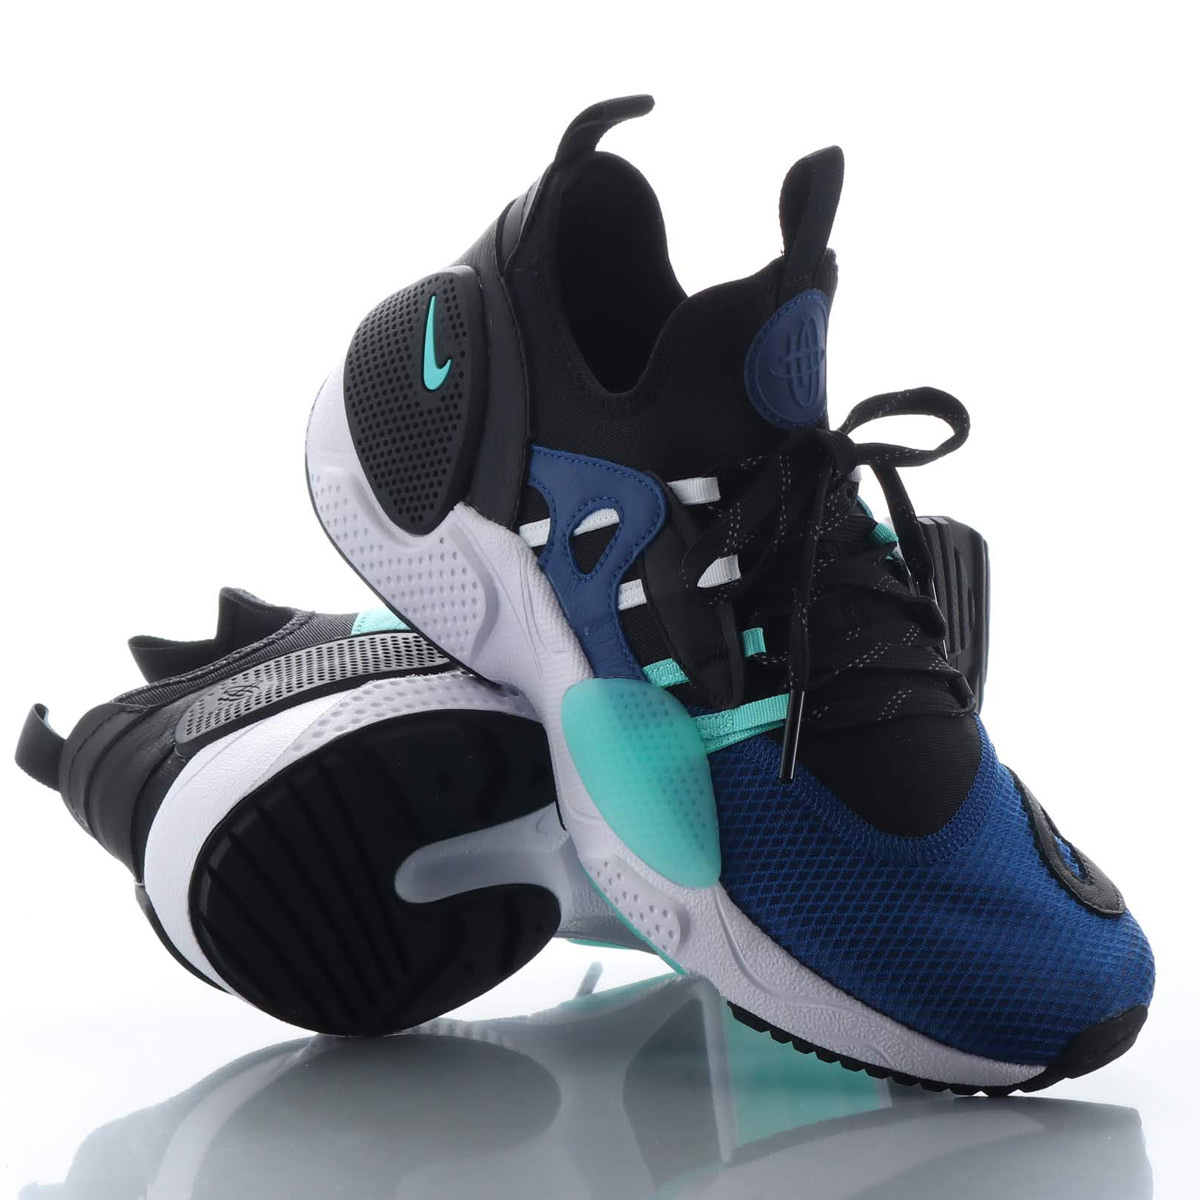 NIKE HUARACHE E.D.G.E. TXT HA (ナイキ ハラチ E.D.G.E. TXT HA) INDIGO FORCE/AURORA GREEN-BLACK-WHITE【メンズ スニーカー】18HO-S